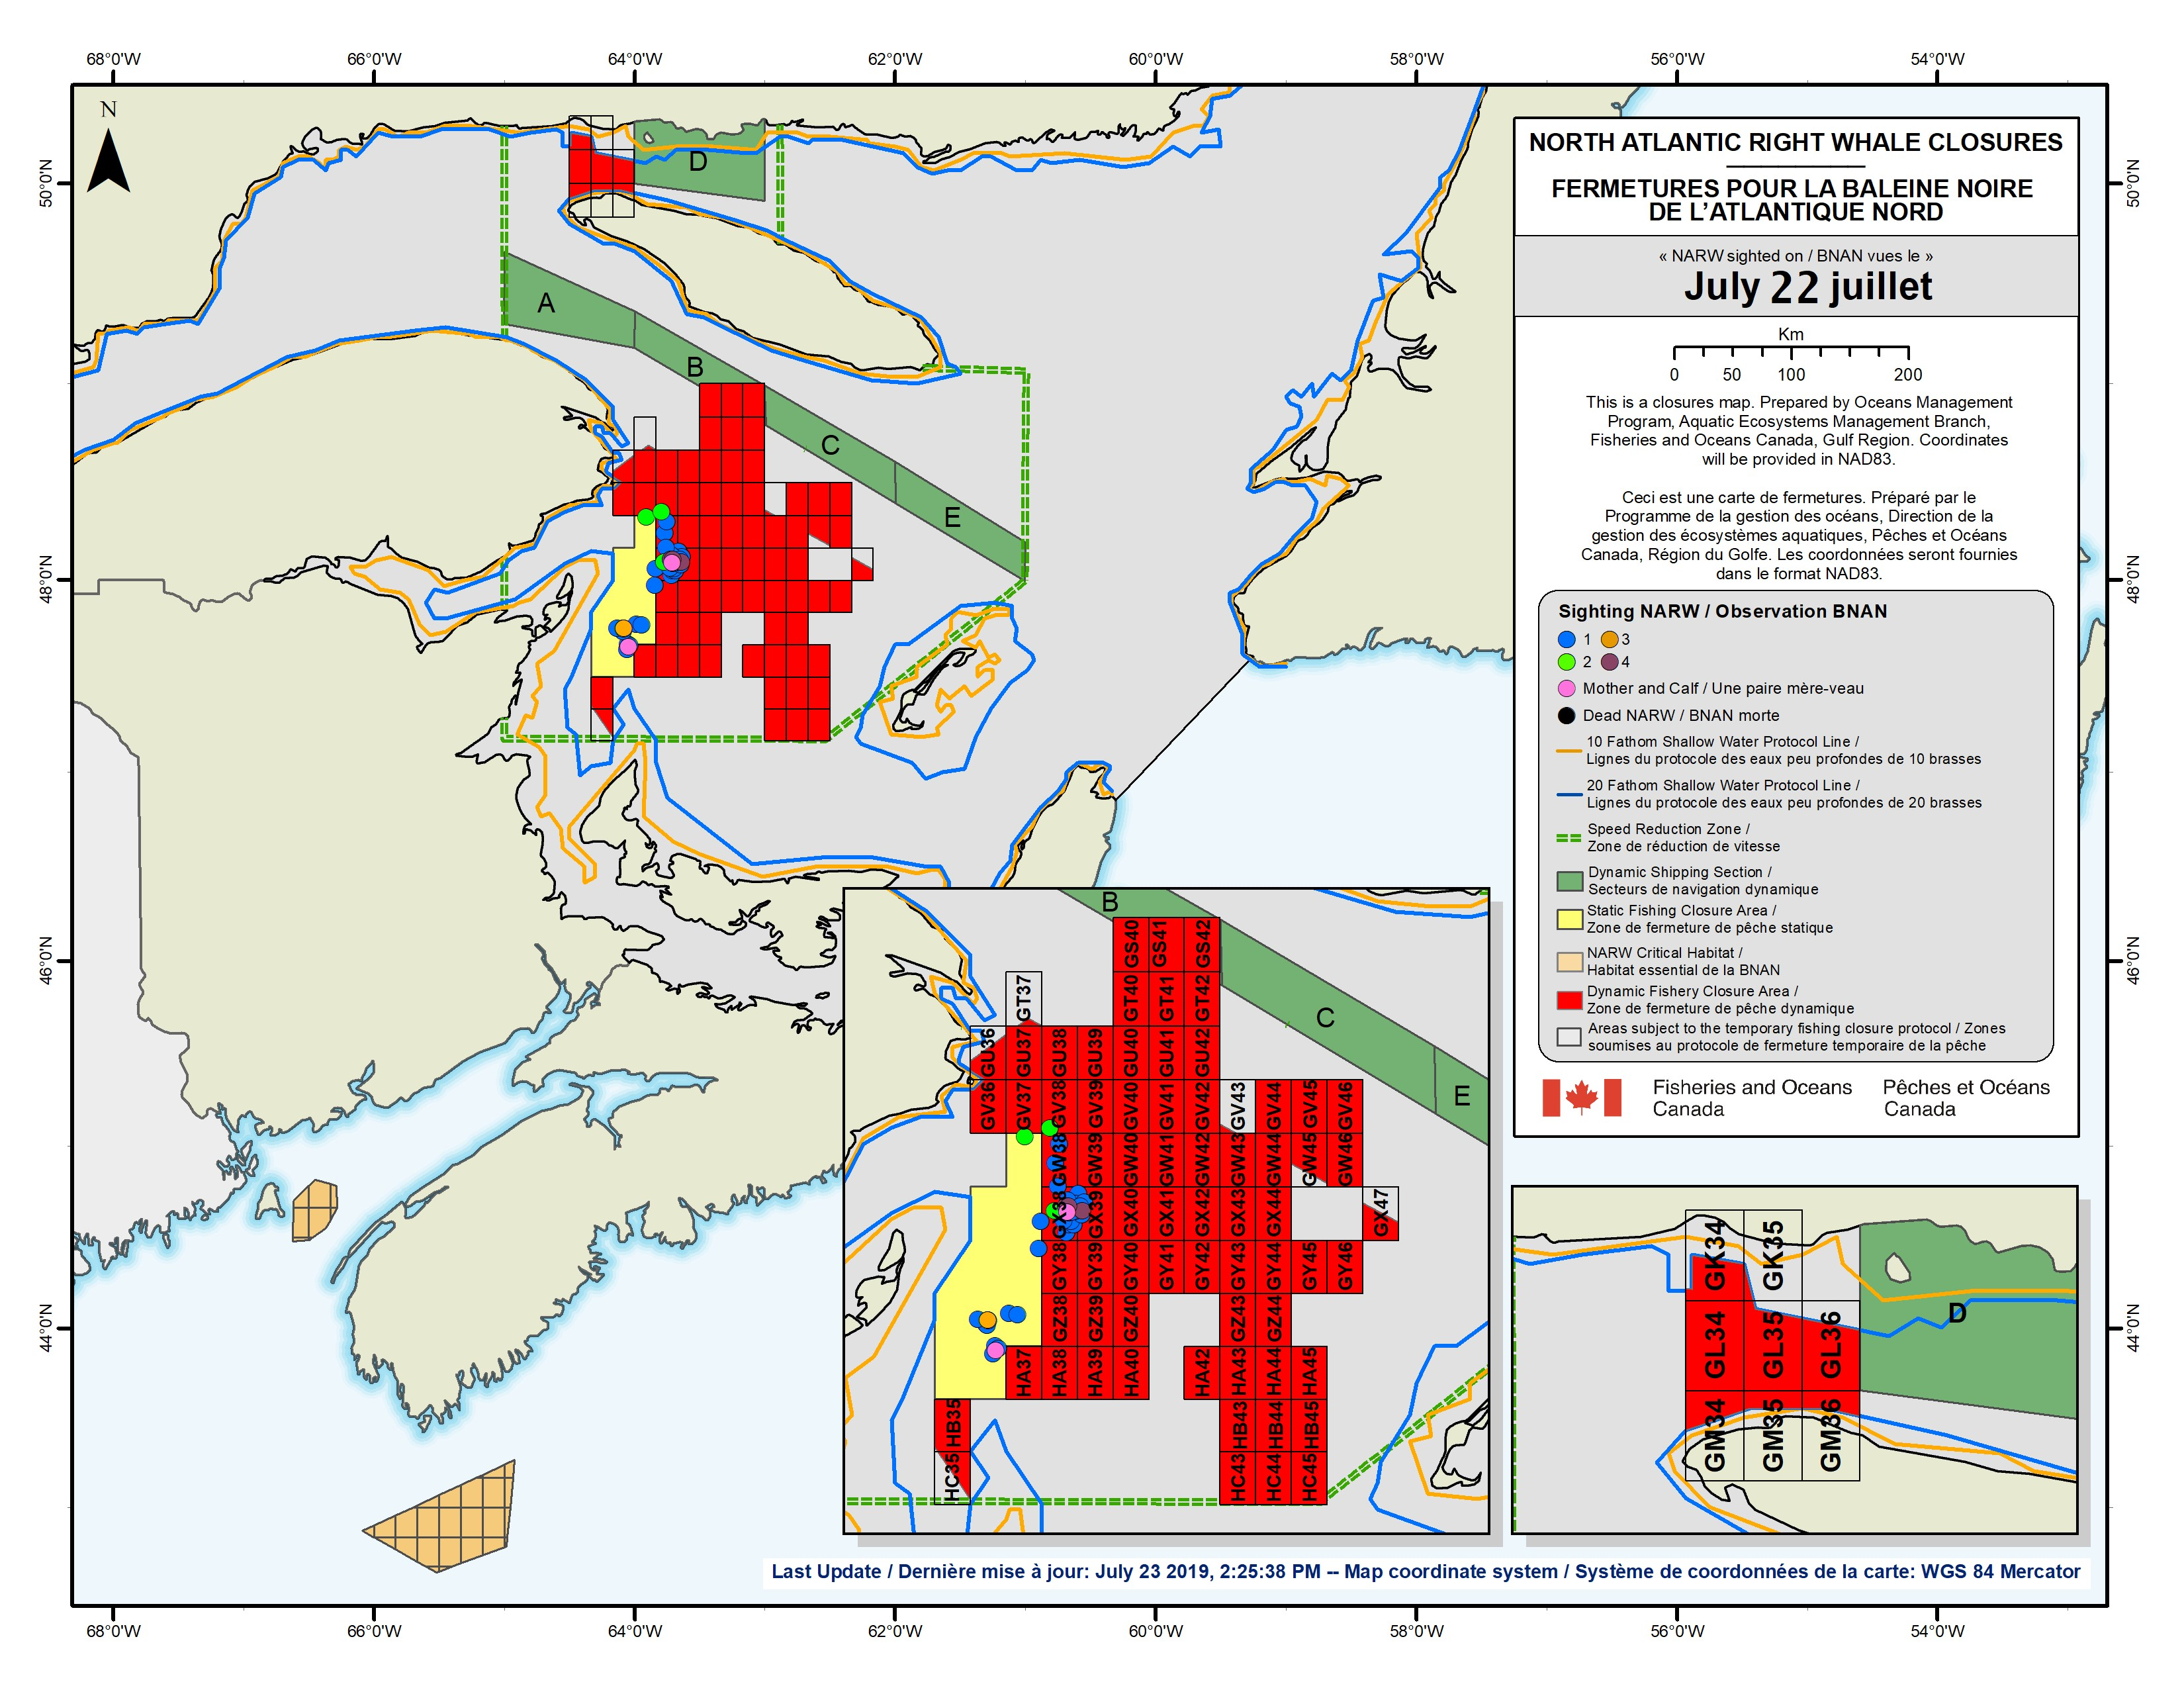 Map identifying all grid closures in Atlantic Canada due to the presence of NARW